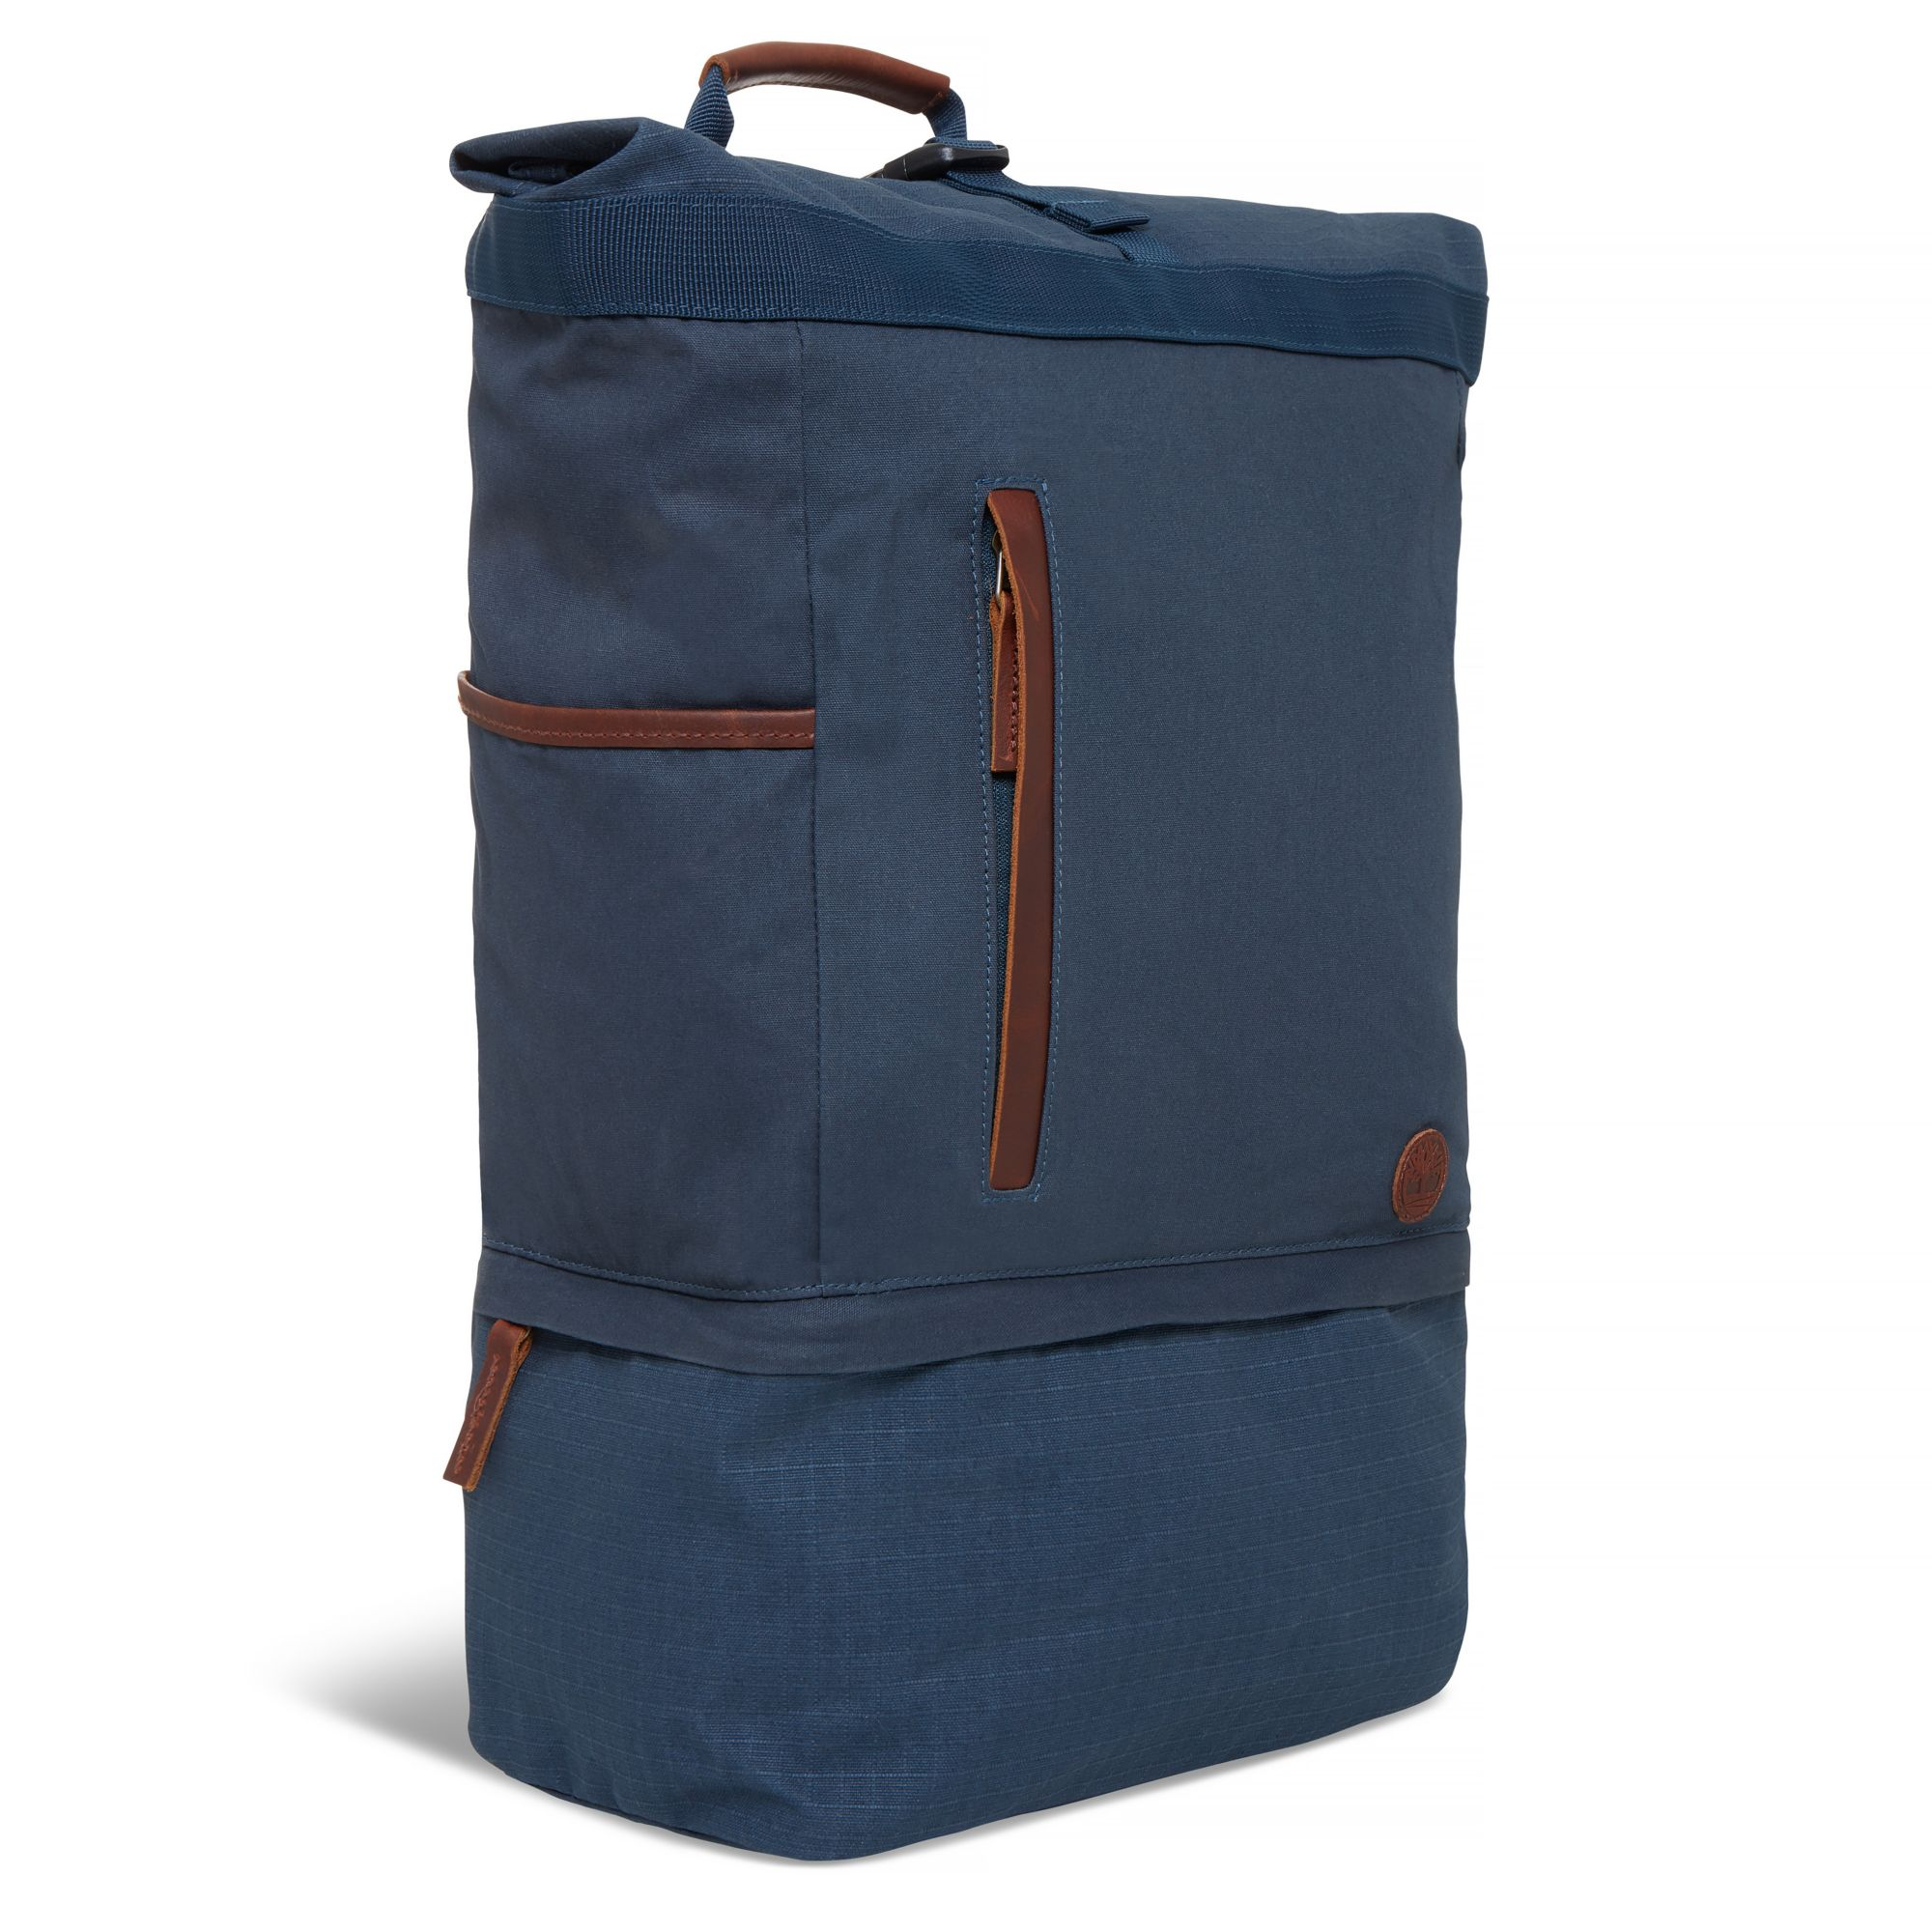 Cohasset Roll Top Backpack Navy